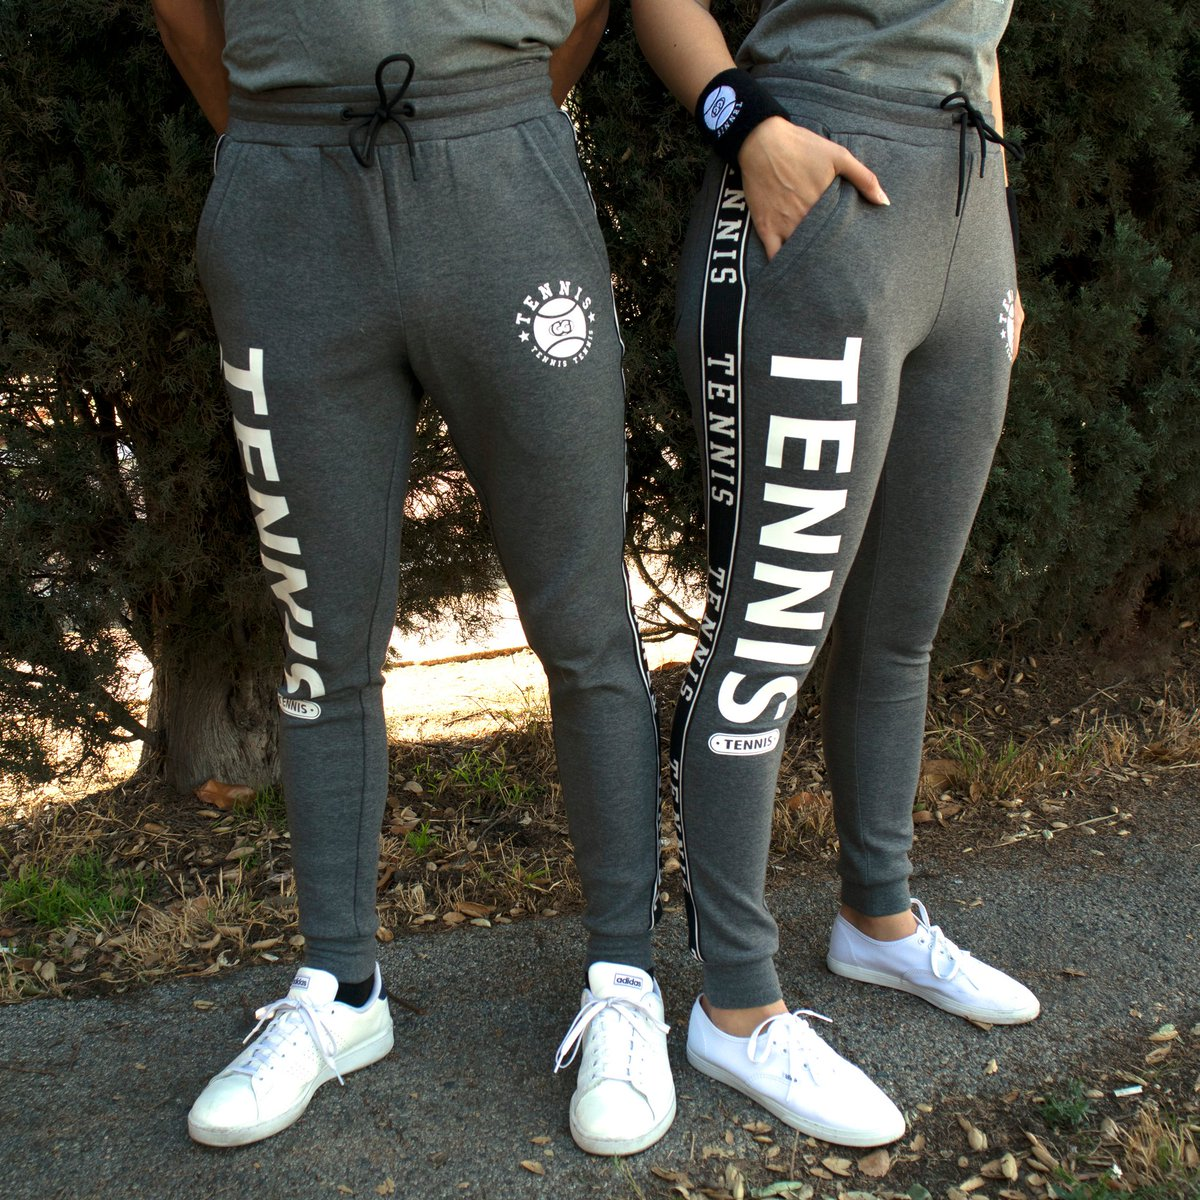 Game Grumps - It's the first new merch of the new year and we're expanding our TENNIS line! NEW Joggers and Sweatband set! Now you can truly embody the essence of tennis while doing a completely unrelated sport or workout!